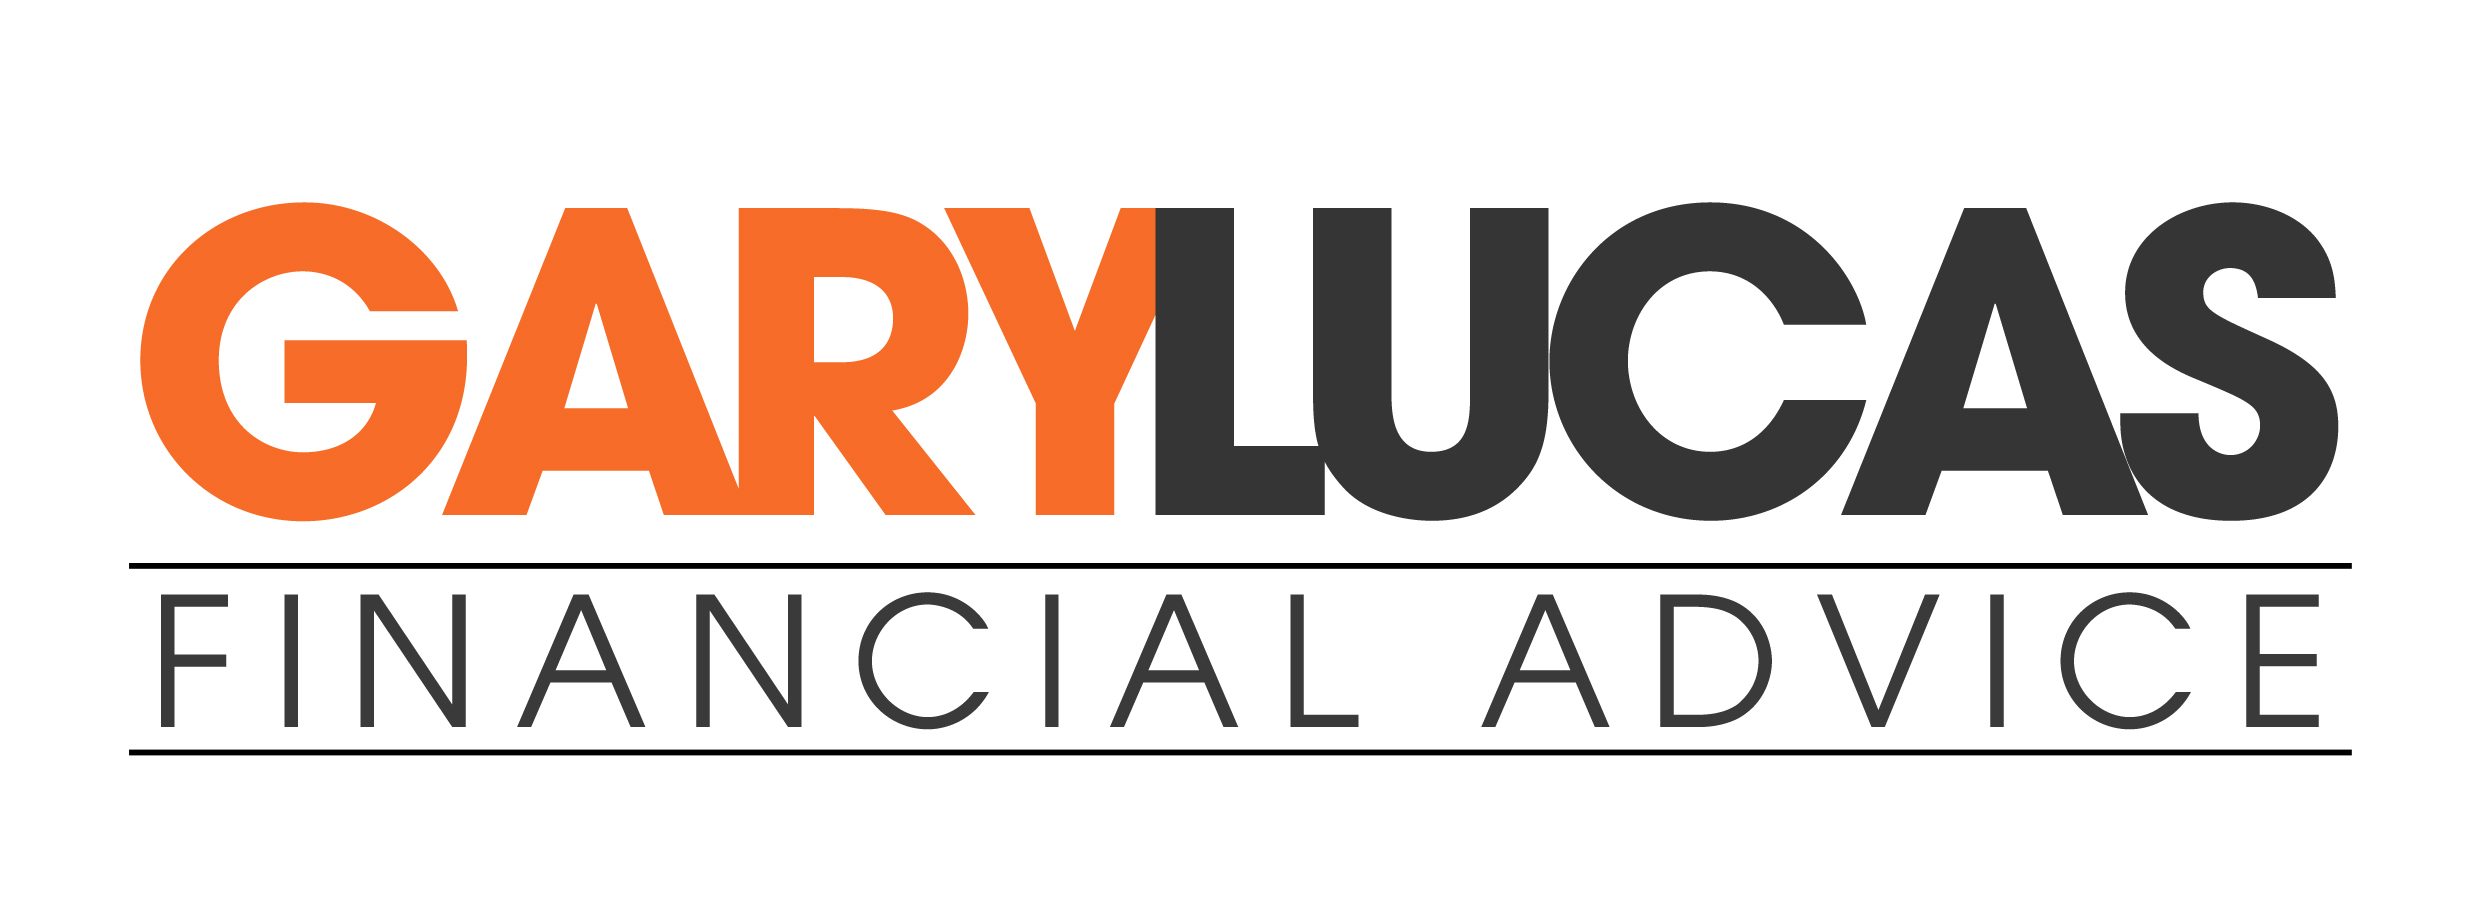 gary-lucas-financial-advice-logo.jpeg